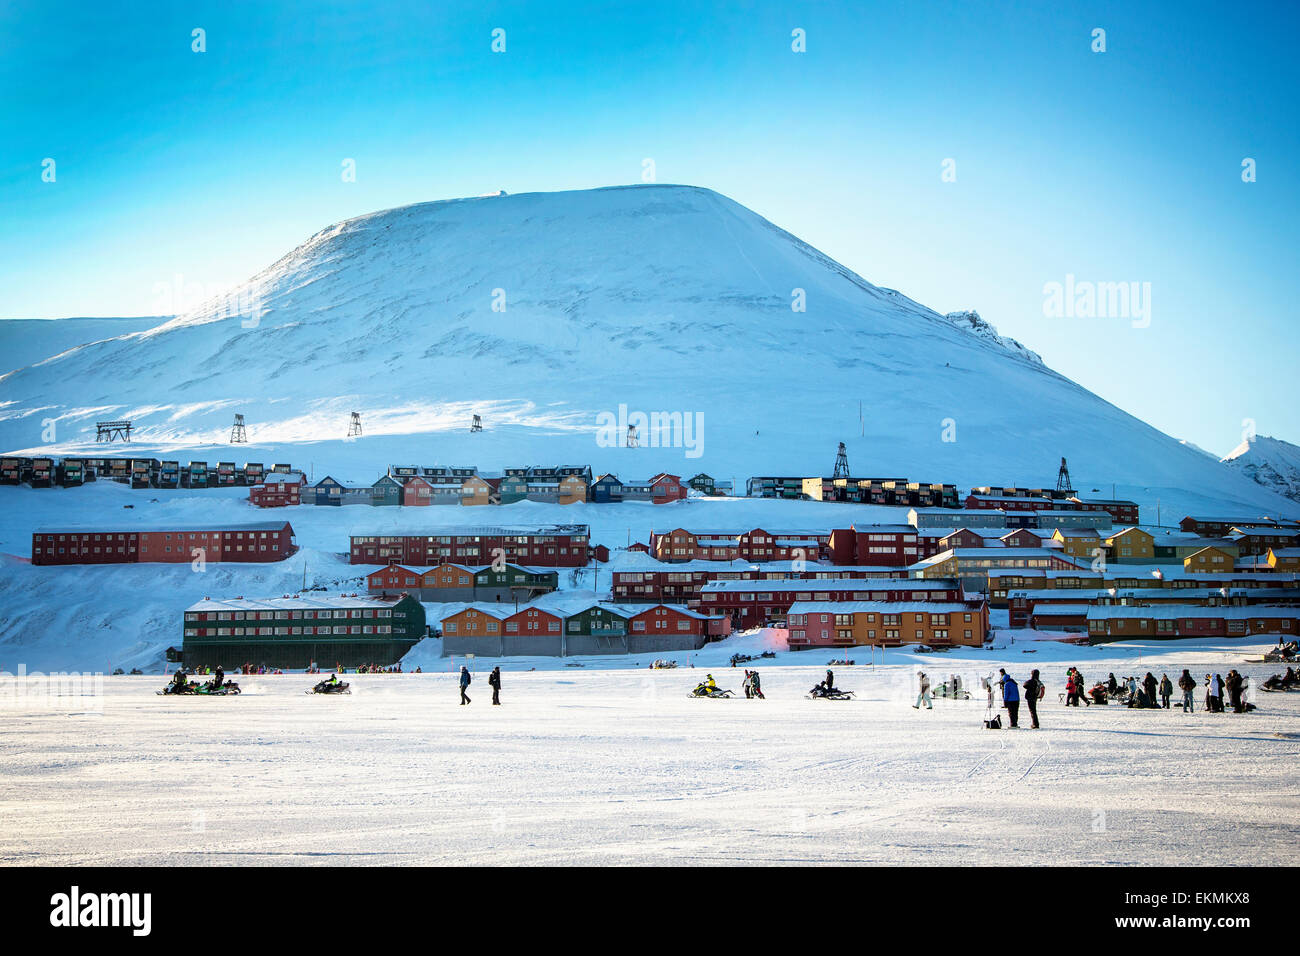 Overall view of Longyearbyen town on Spitsbergen in Svalbard,Norway prior to total solar eclipse. - Stock Image